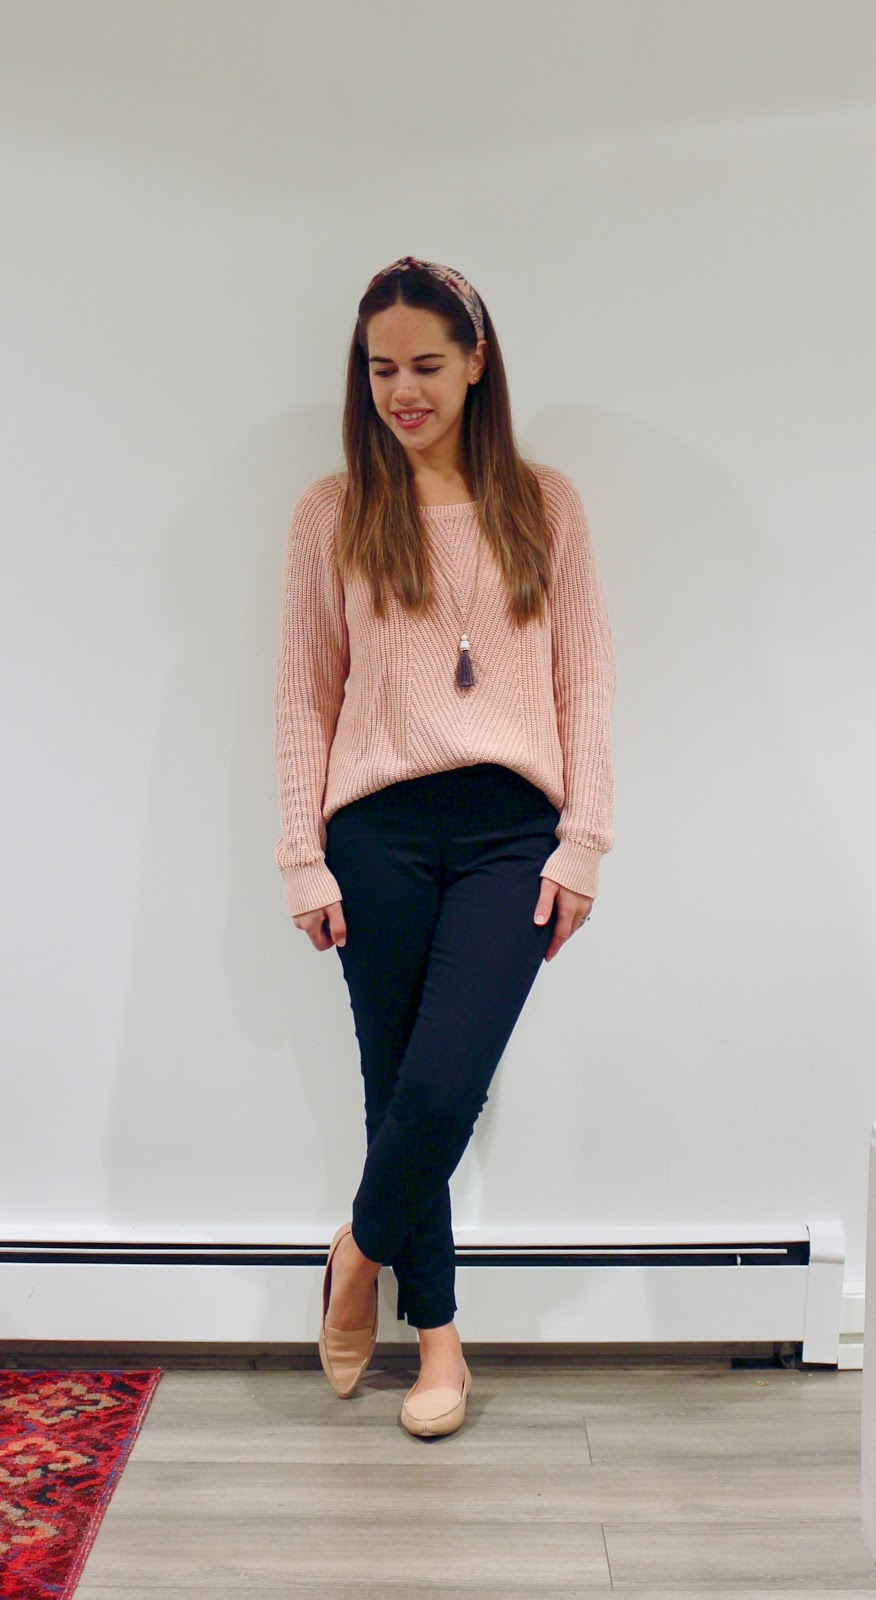 Jules in Flats - Gap Shaker Stitch Pink Sweater (Business Casual Fall Workwear on a Budget)